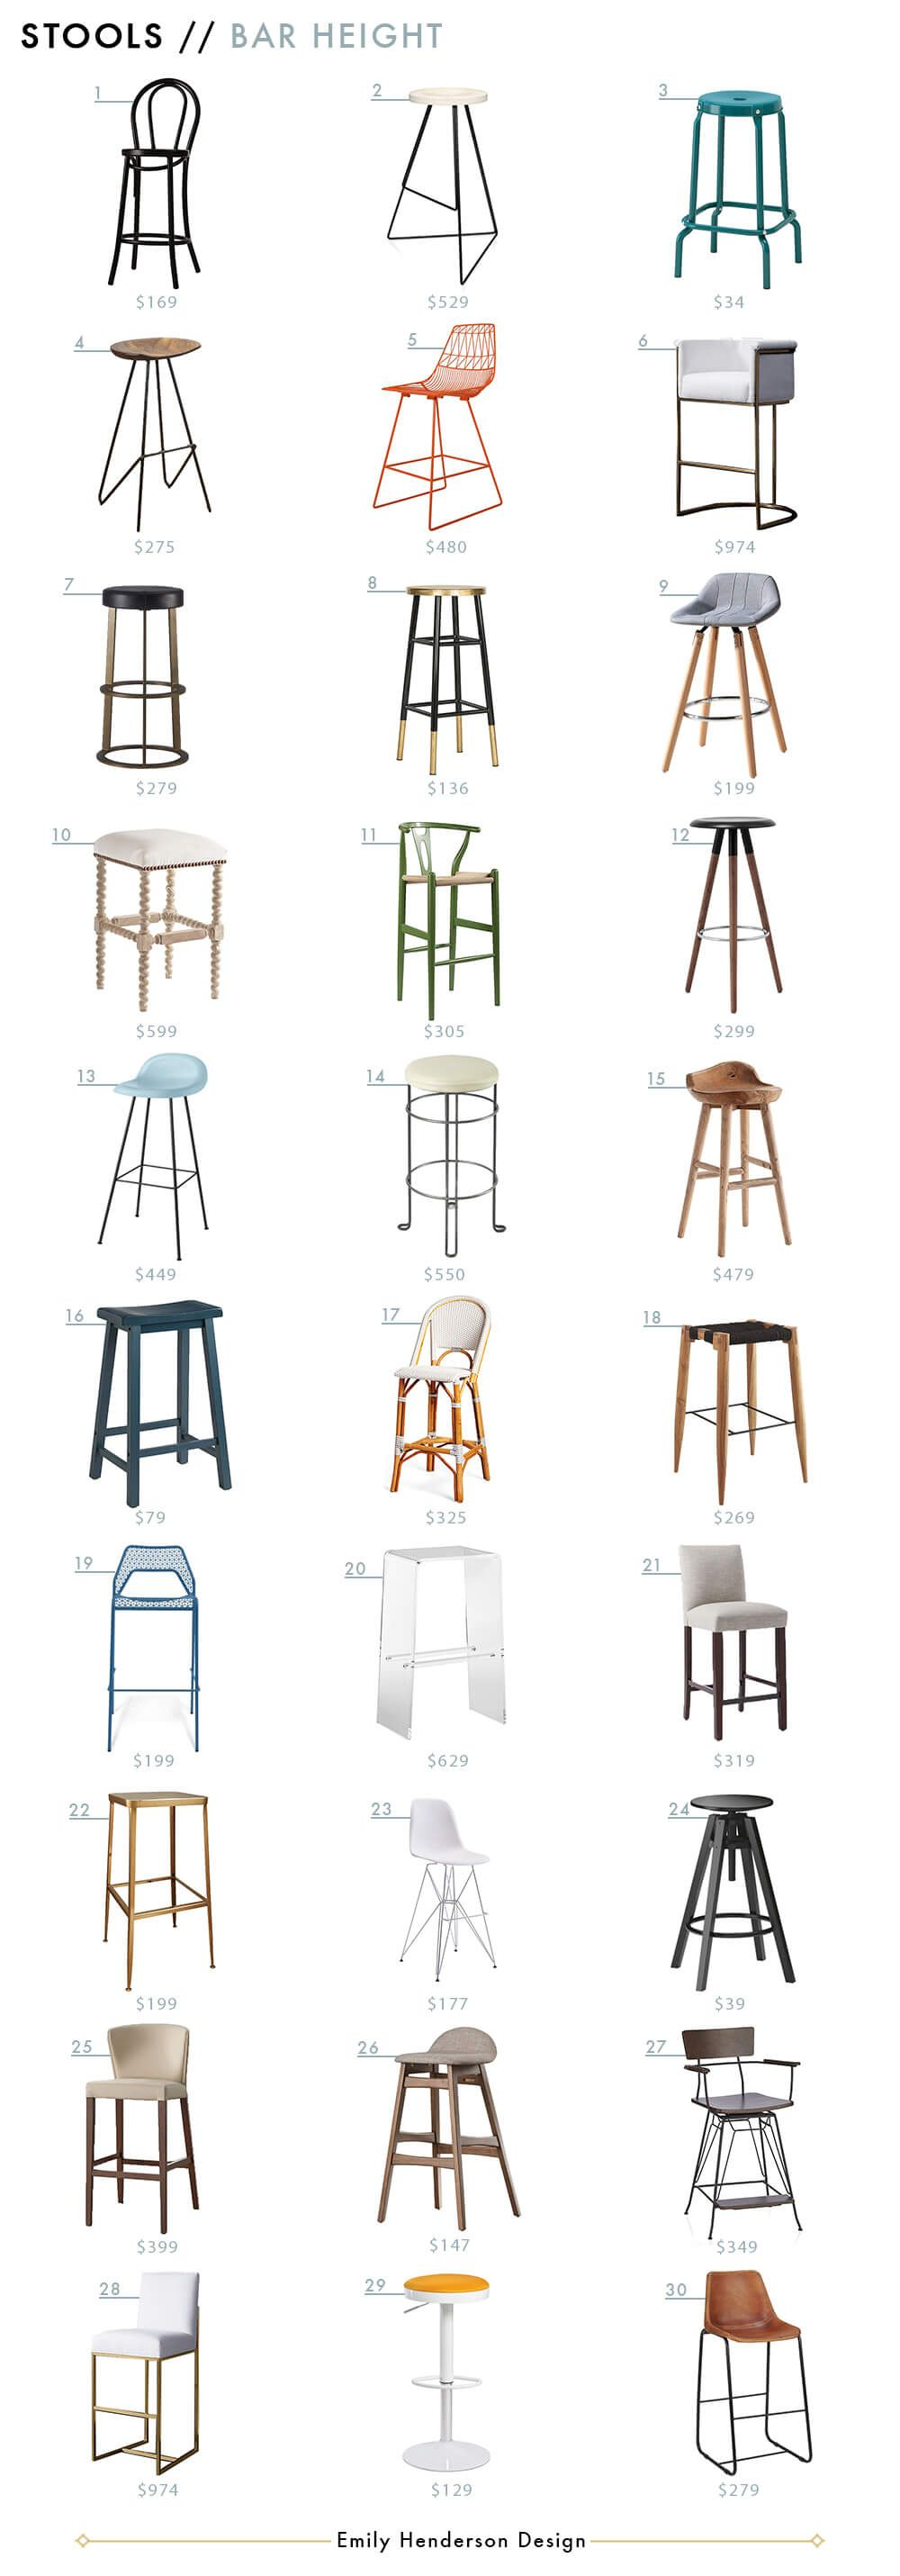 the ultimate counter bar stool roundup counter bar stools bar the ultimate counter bar stool roundup